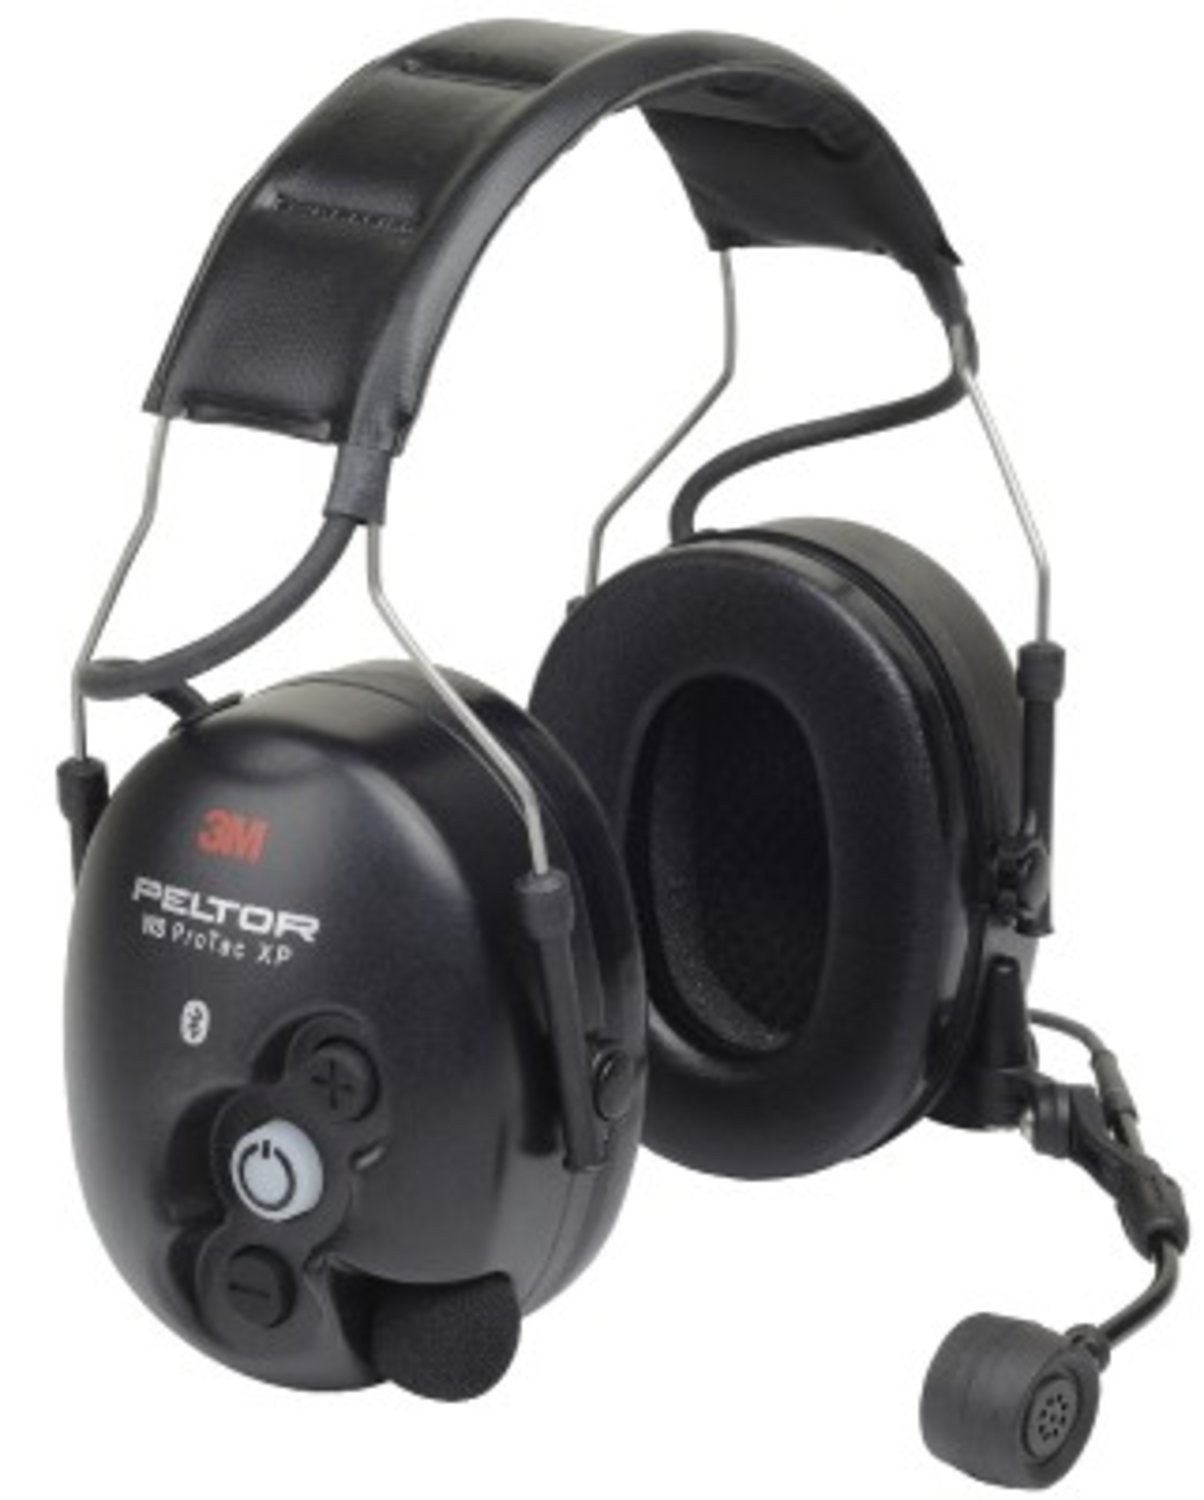 Wireless Phone Headset WS5 Peltor Pro Tac